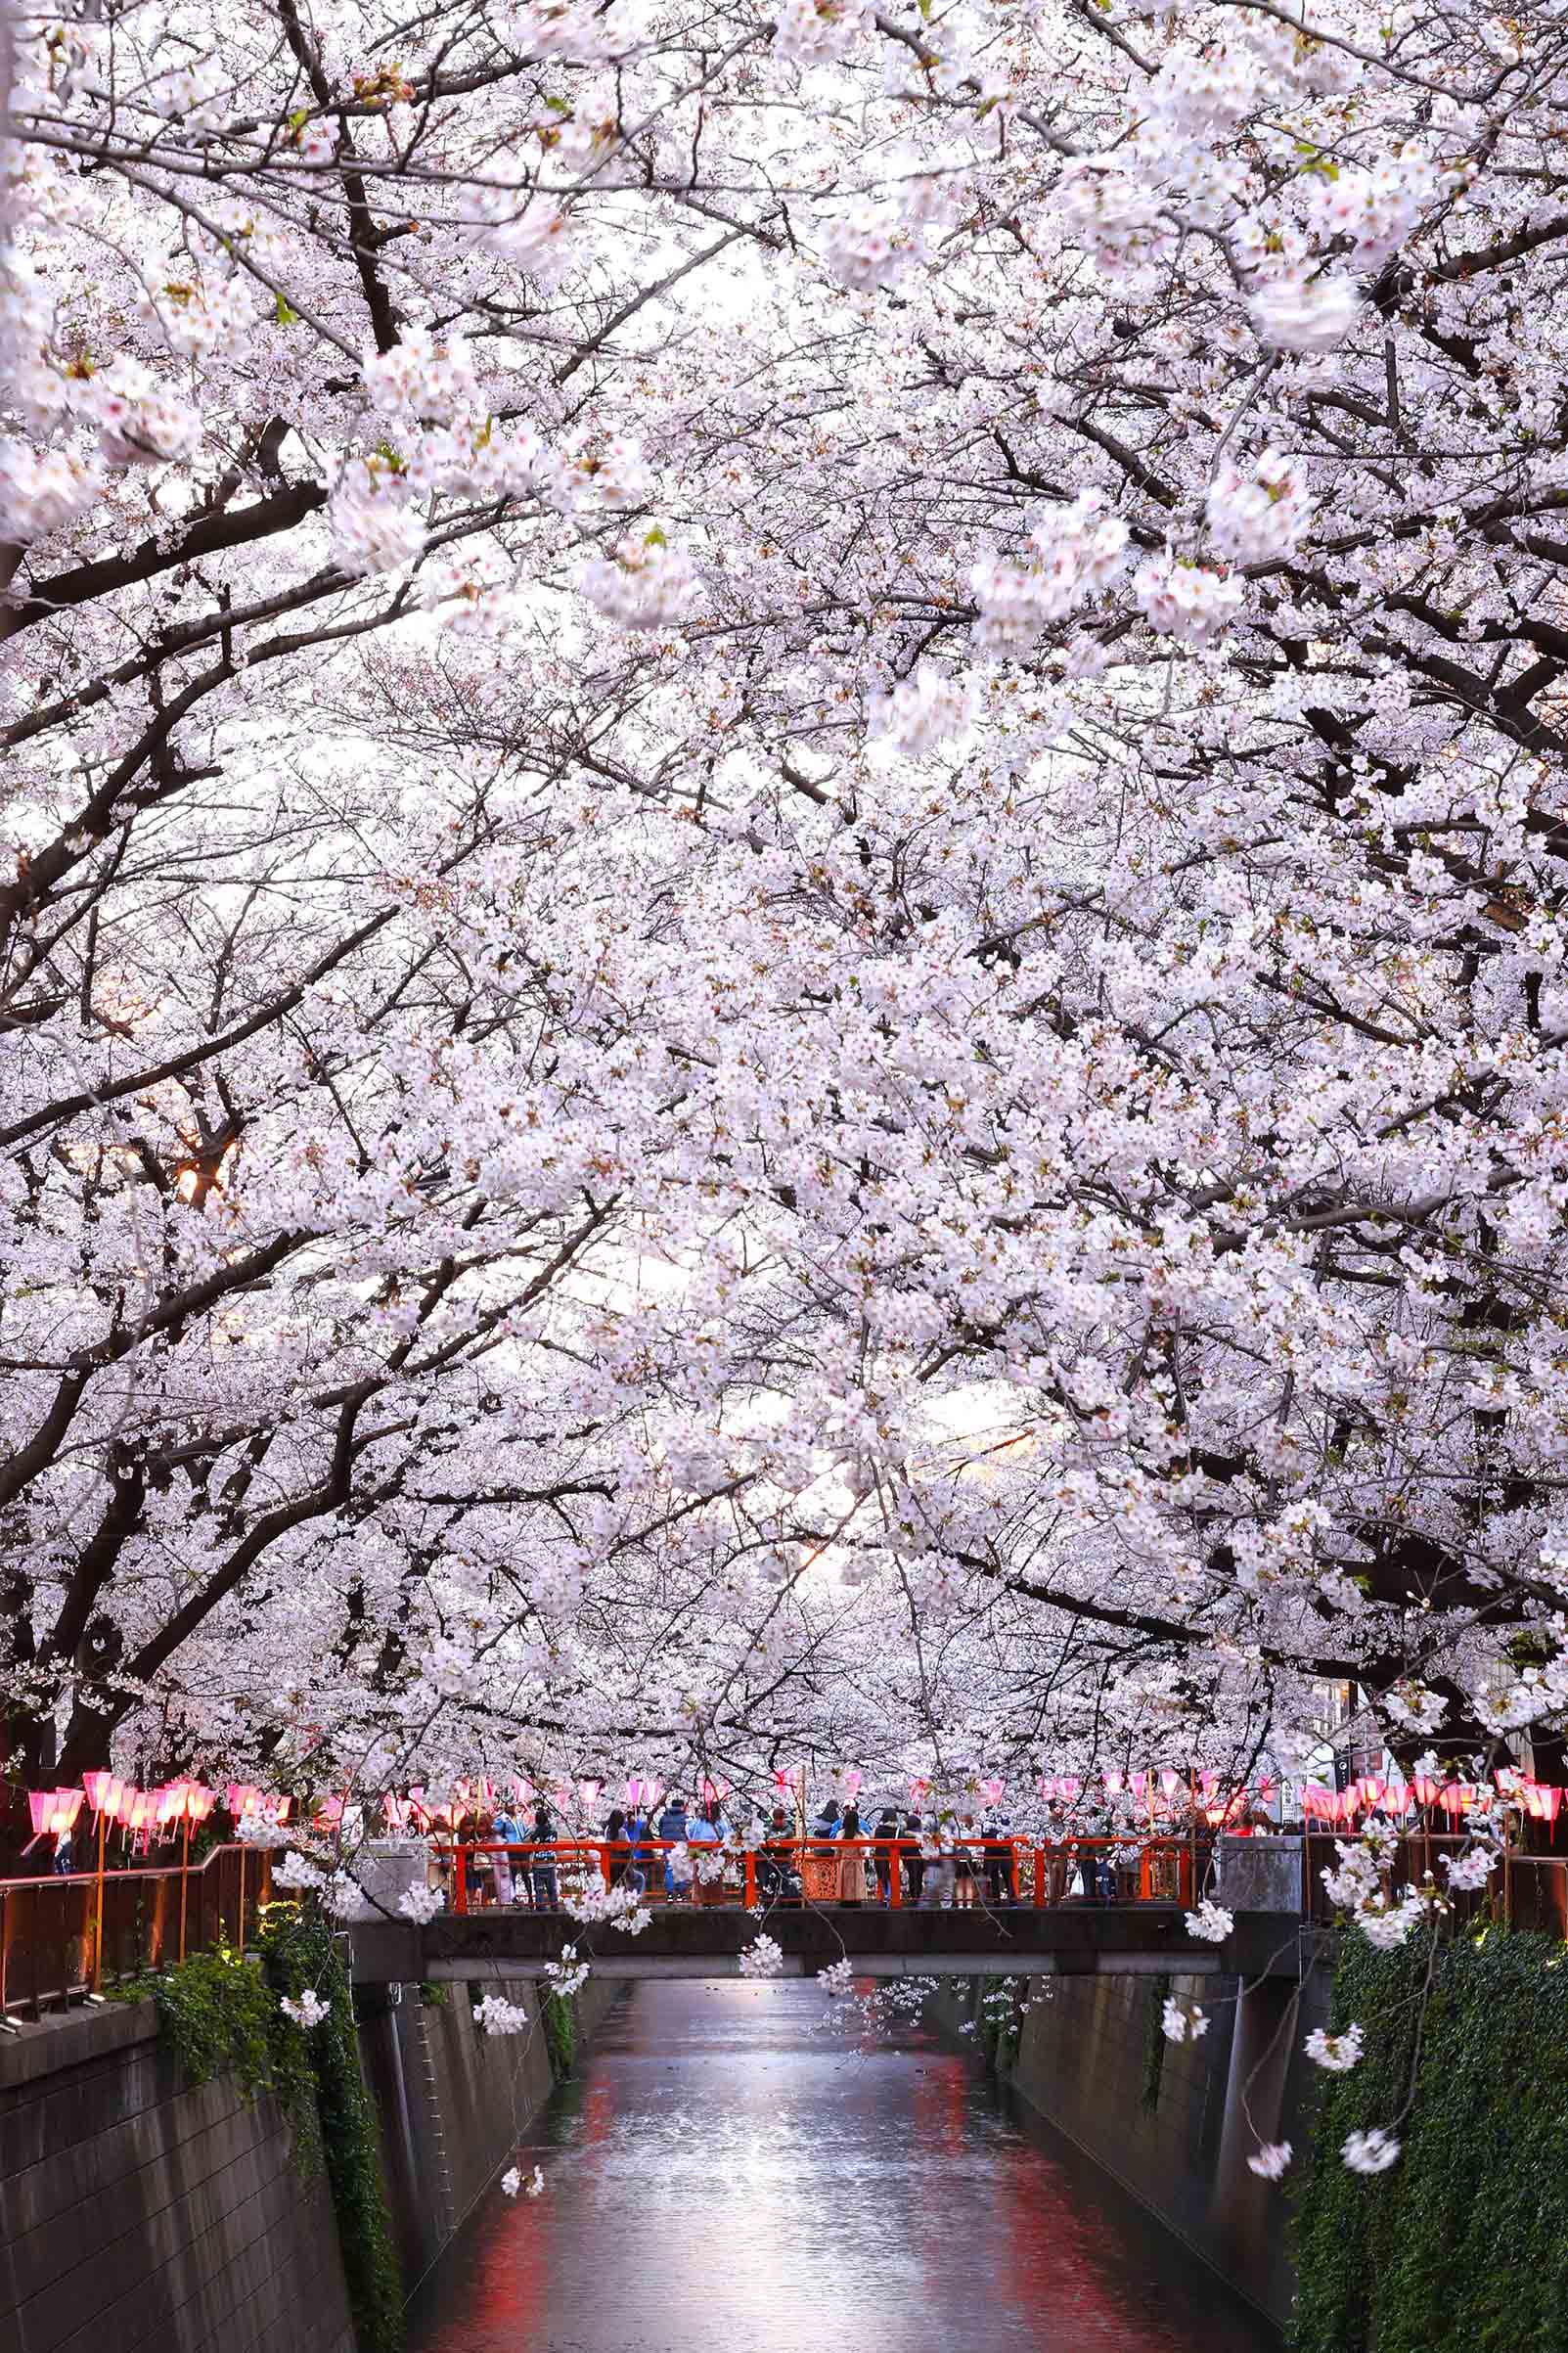 The famous cherry blossoms in bloom on the banks of the Meguro River in Tokyo